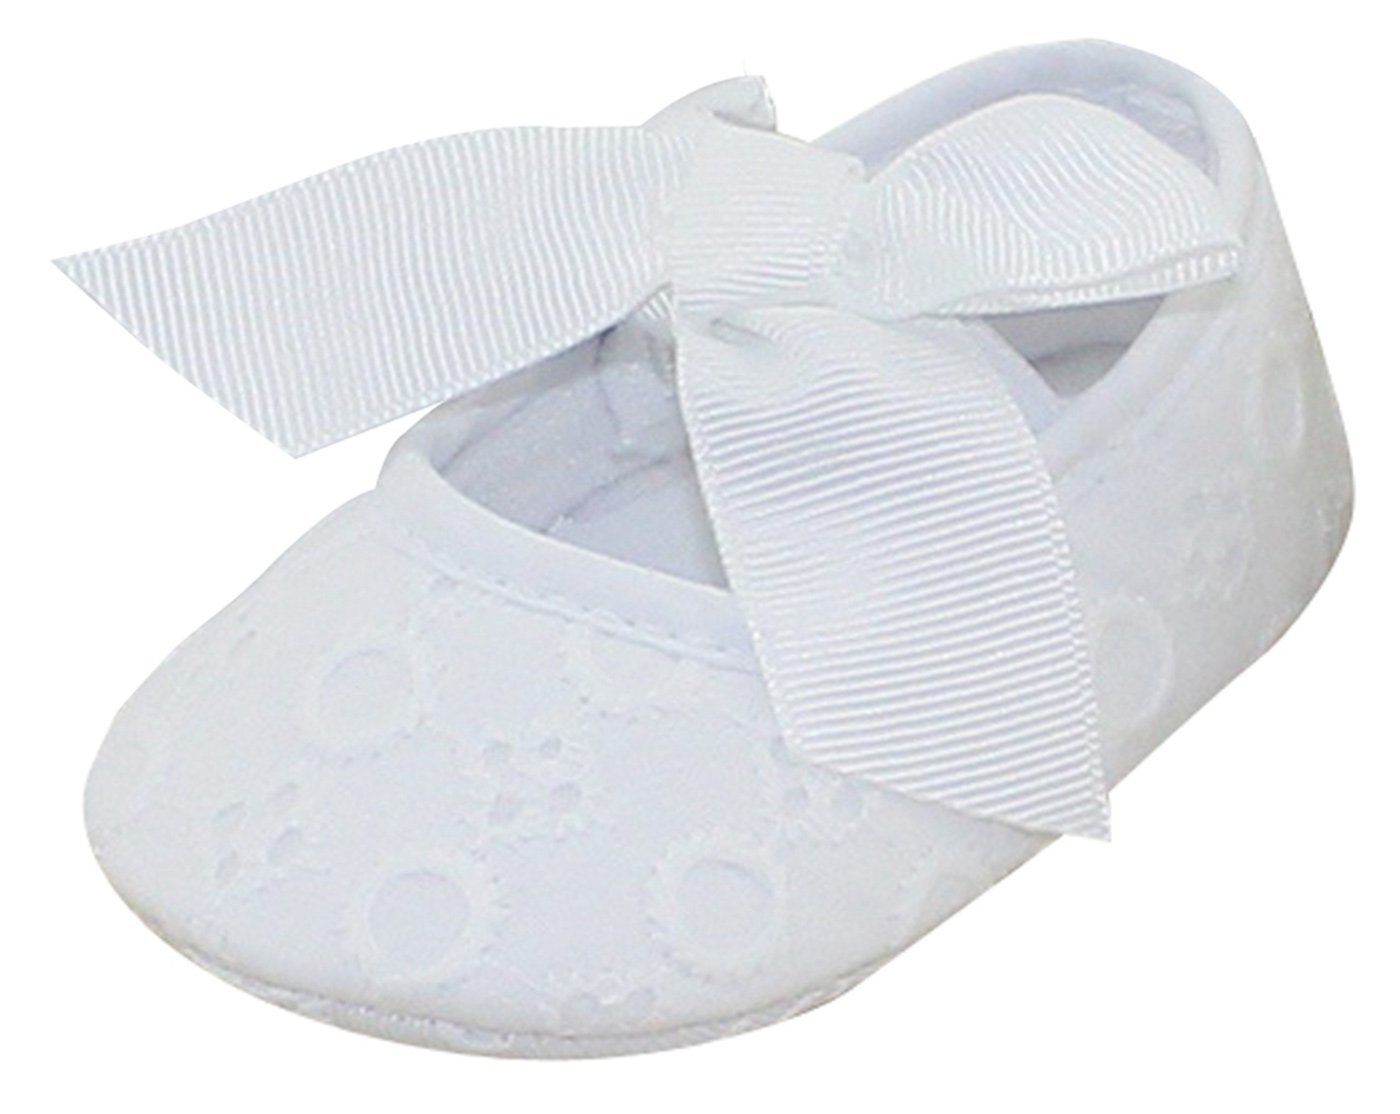 Baby Girls Princess Dress Shoes with Bowknot Baptism Christening Dance Soft Sole Cloth Crib Shoes Sneaker White 12-18 Months